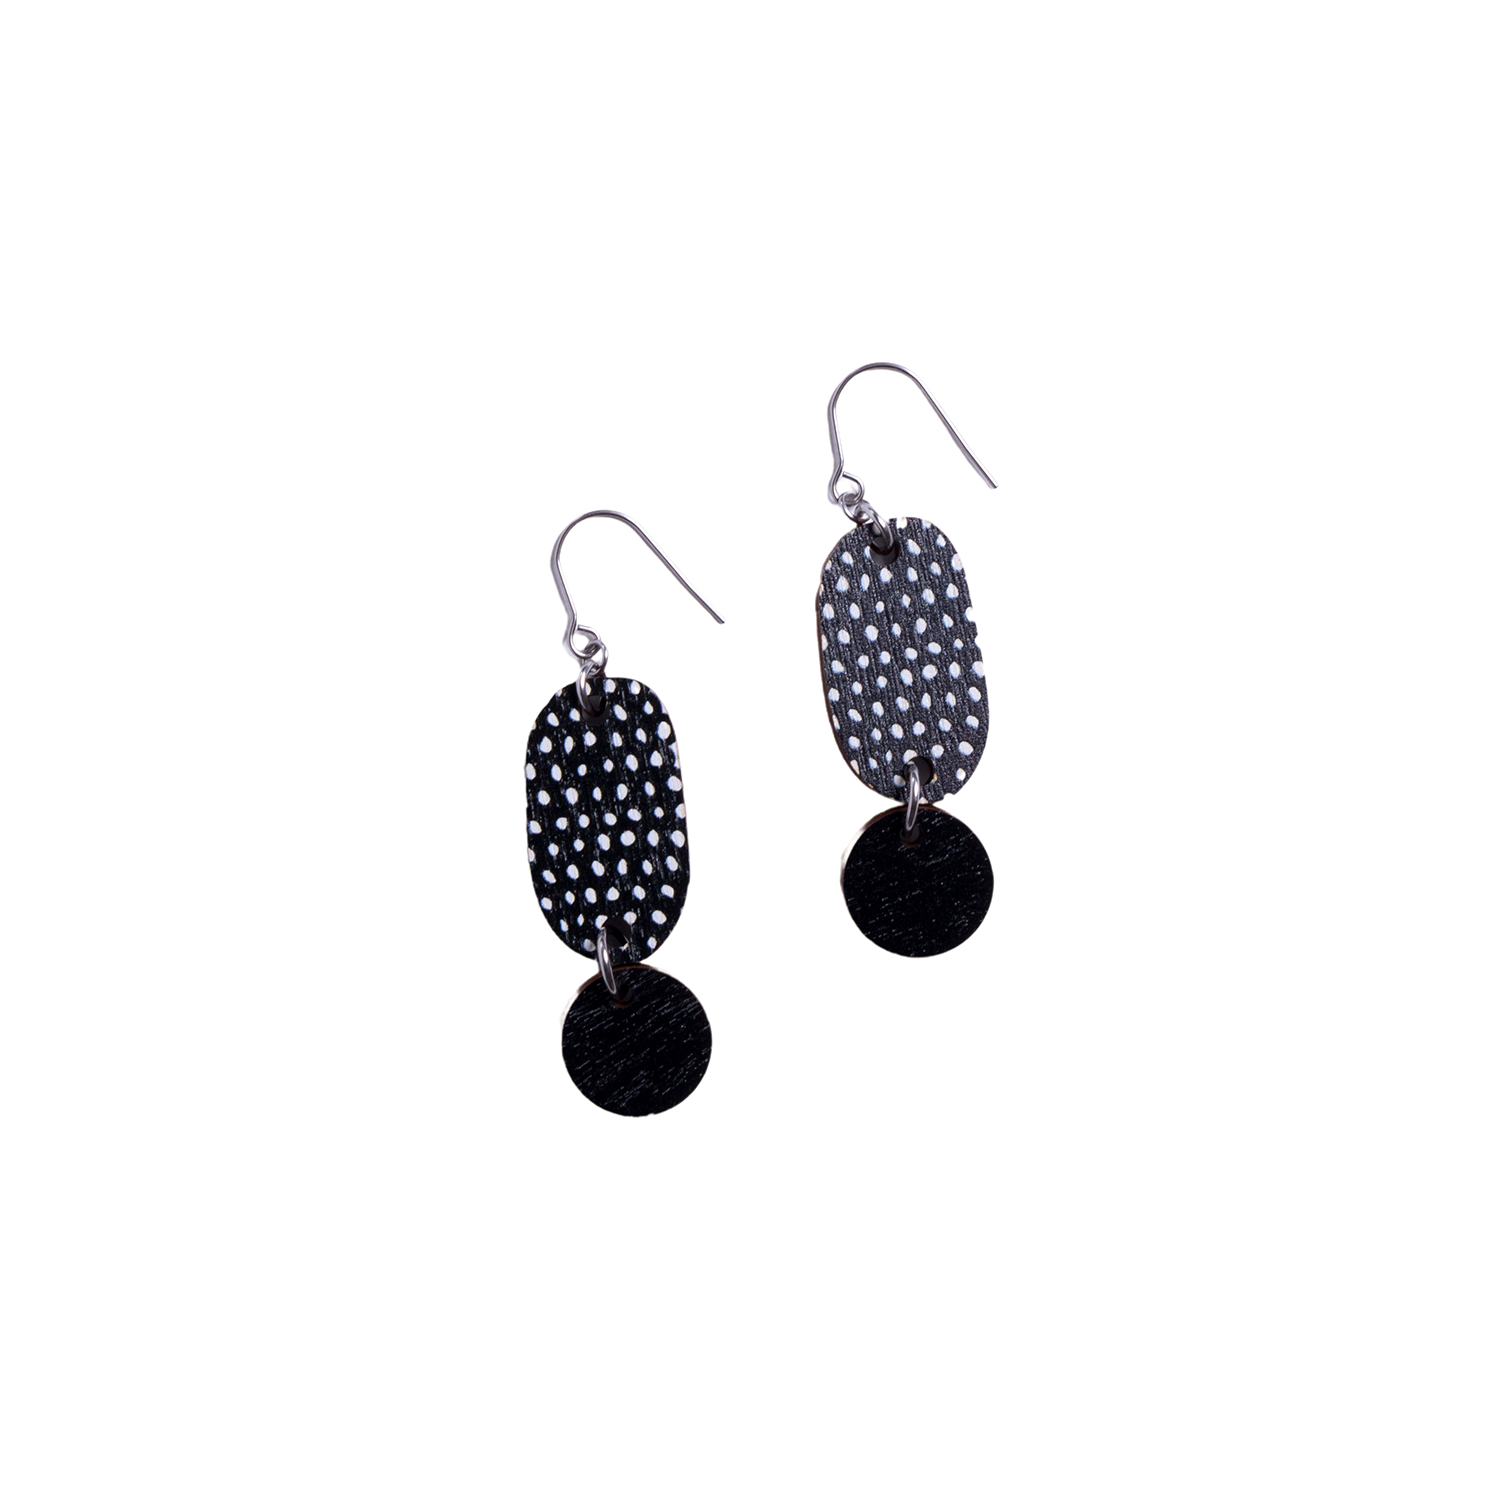 Leikki Earrings